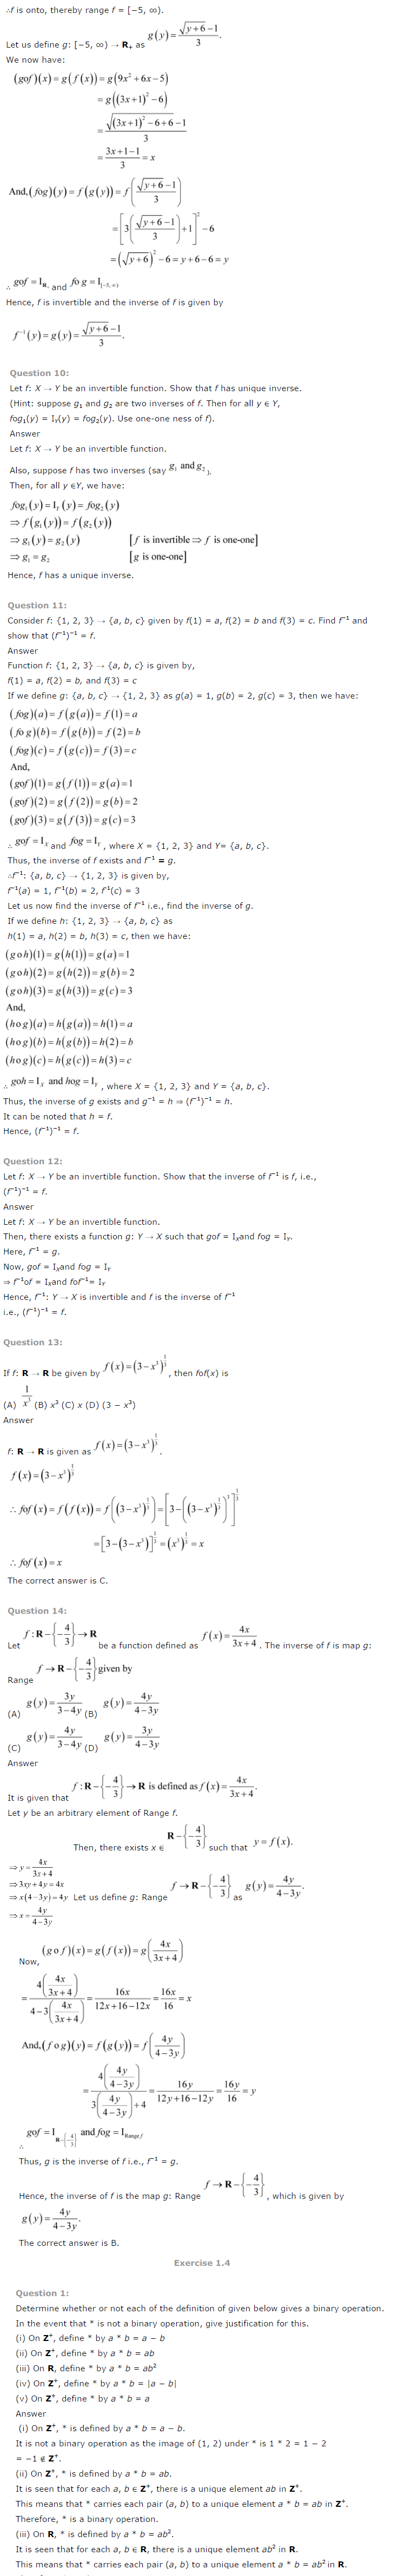 NCERT Solutions For Class 12 Maths Chapter 1 Relations and Functions 7